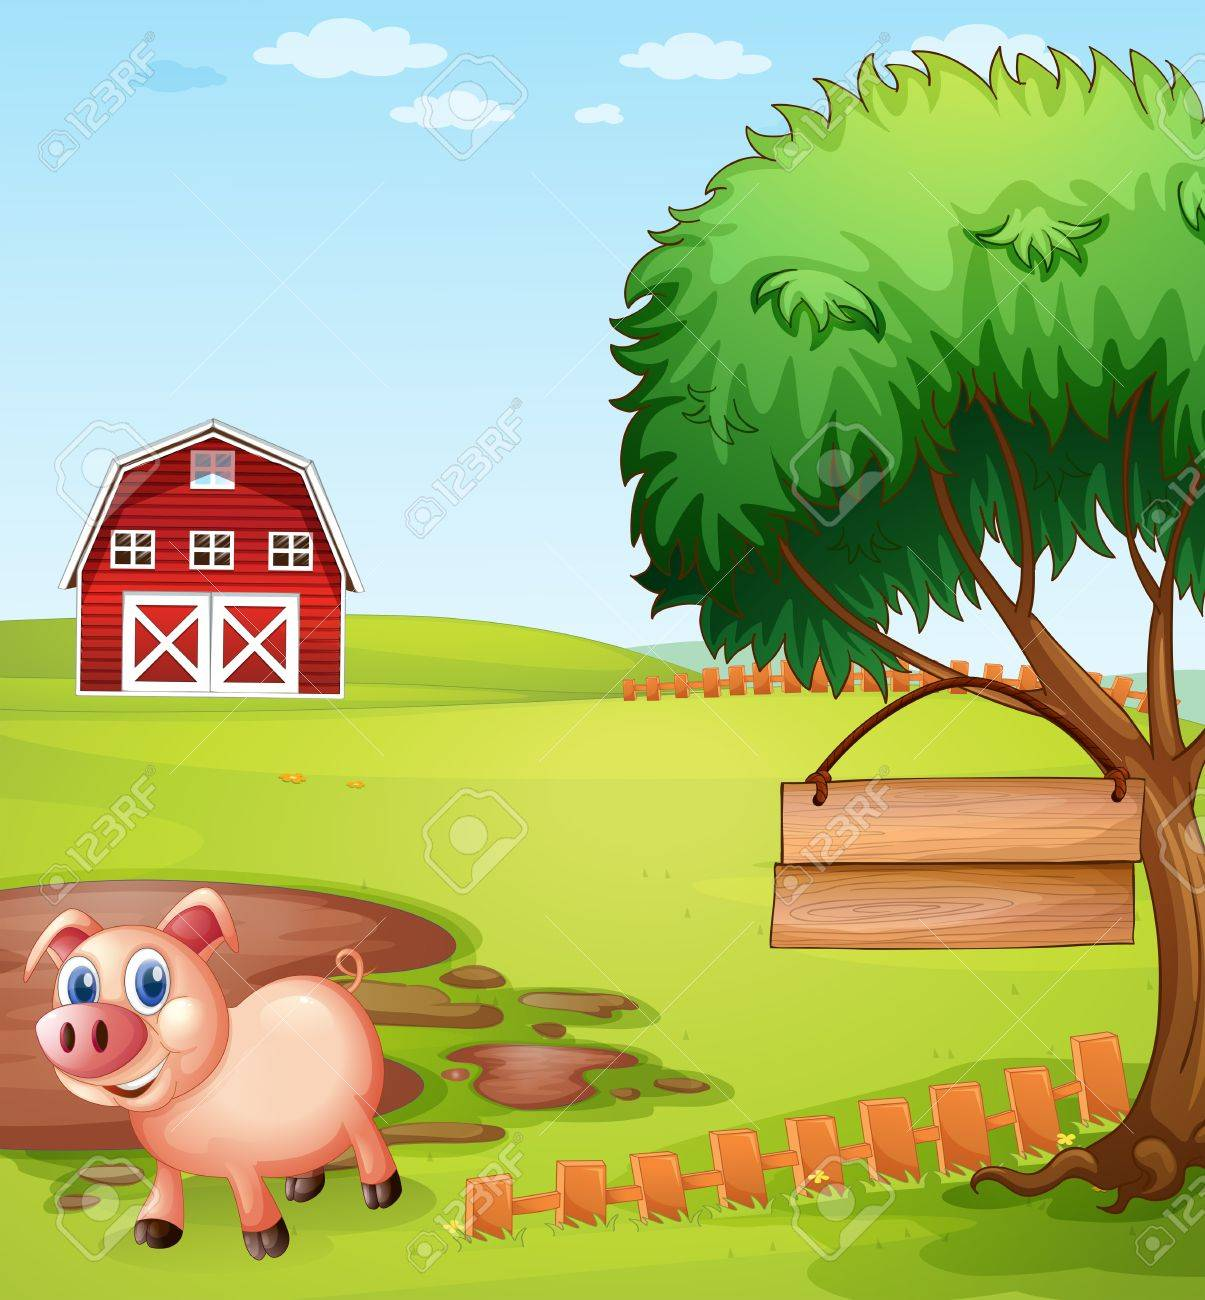 Illustration of a pig near the tree with a hanging empty signboard Stock Vector - 20272832